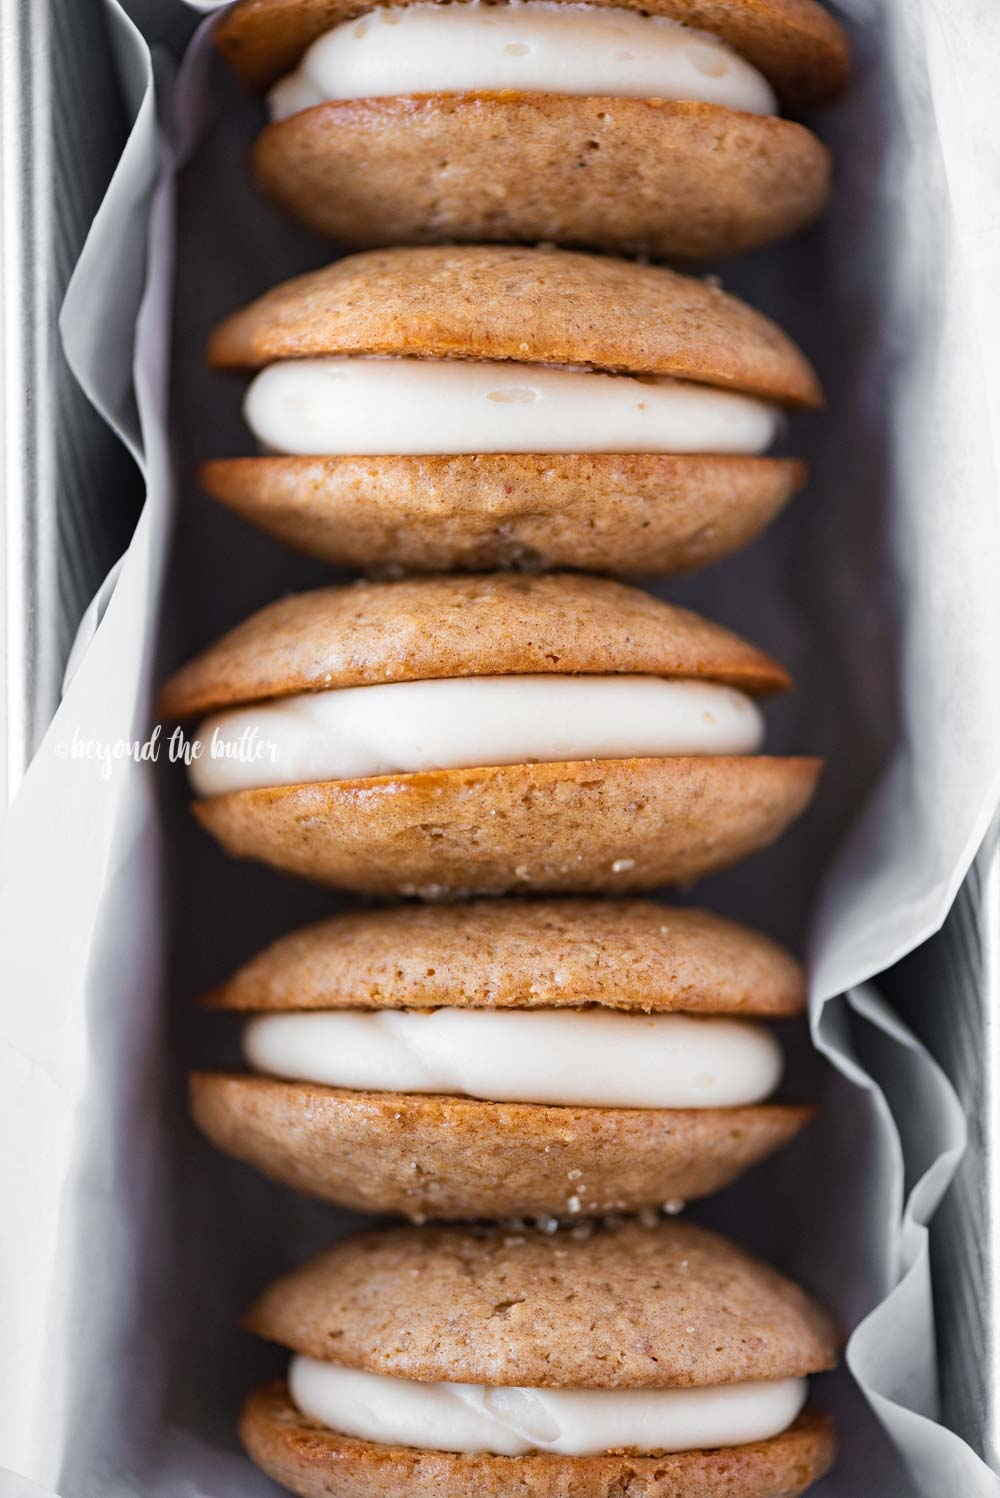 Apple Cider Whoopie Pies | All Images © Beyond the Butter, LLC